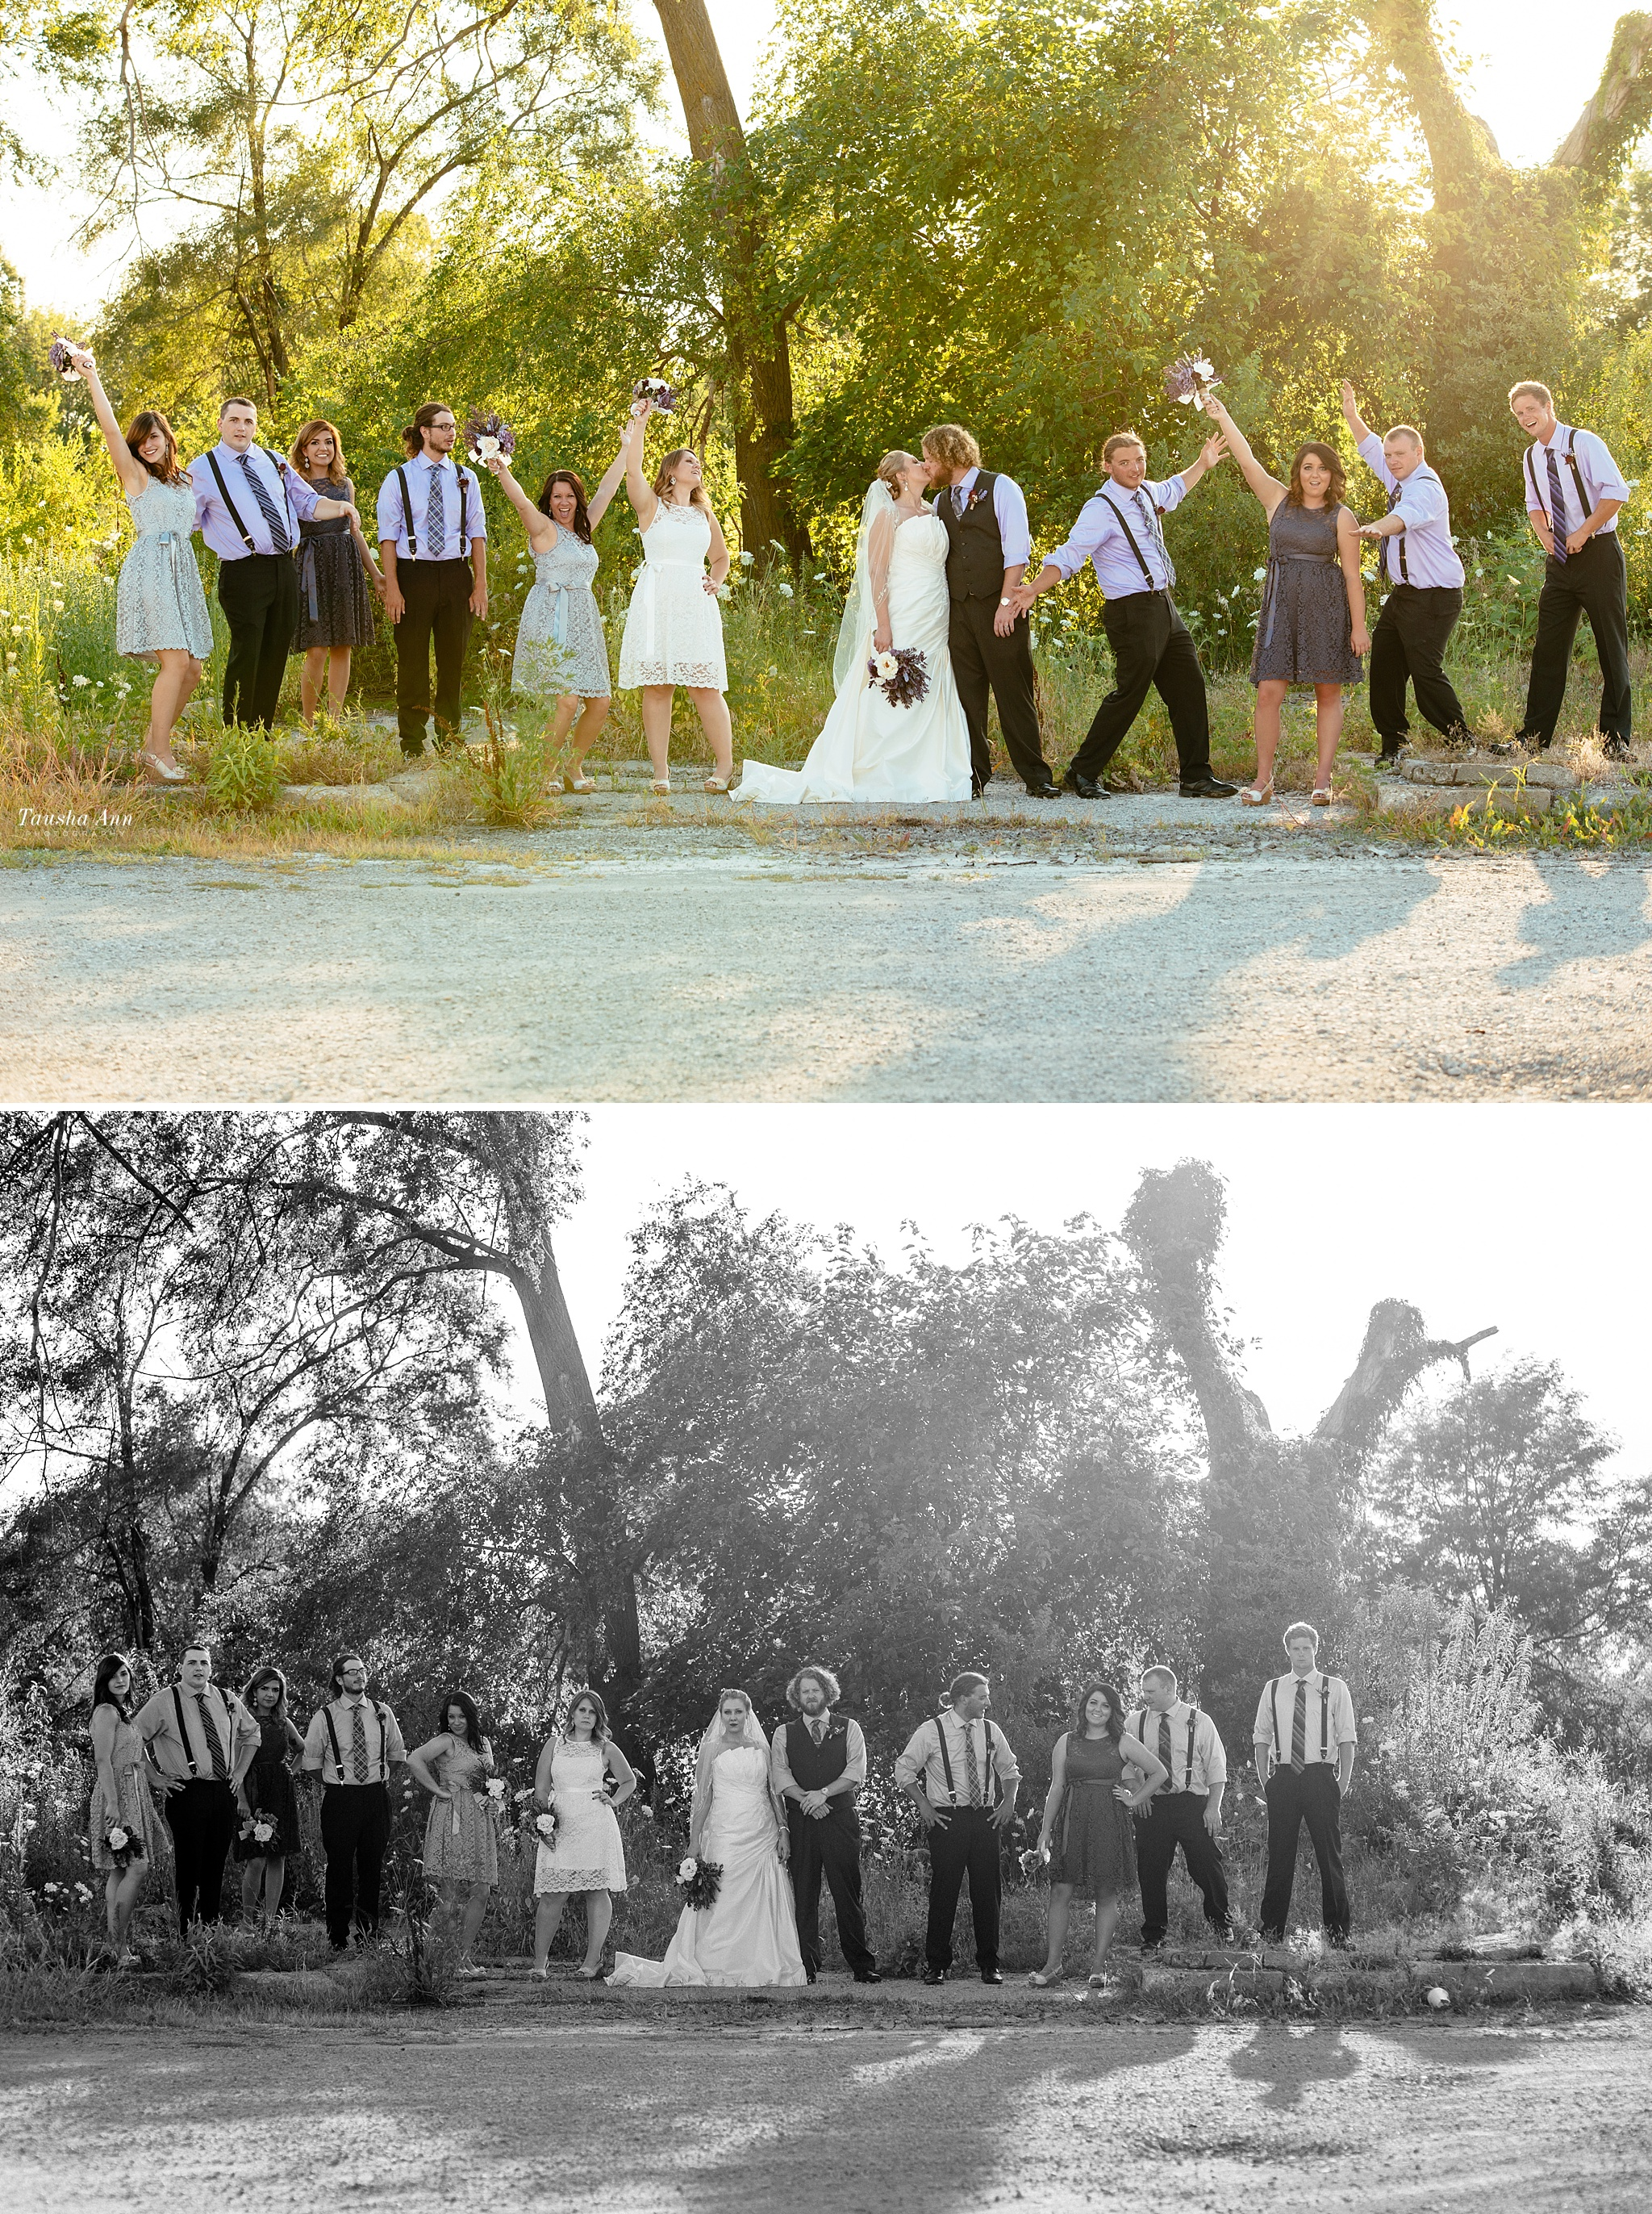 Portraits of entire wedding party outdoors.